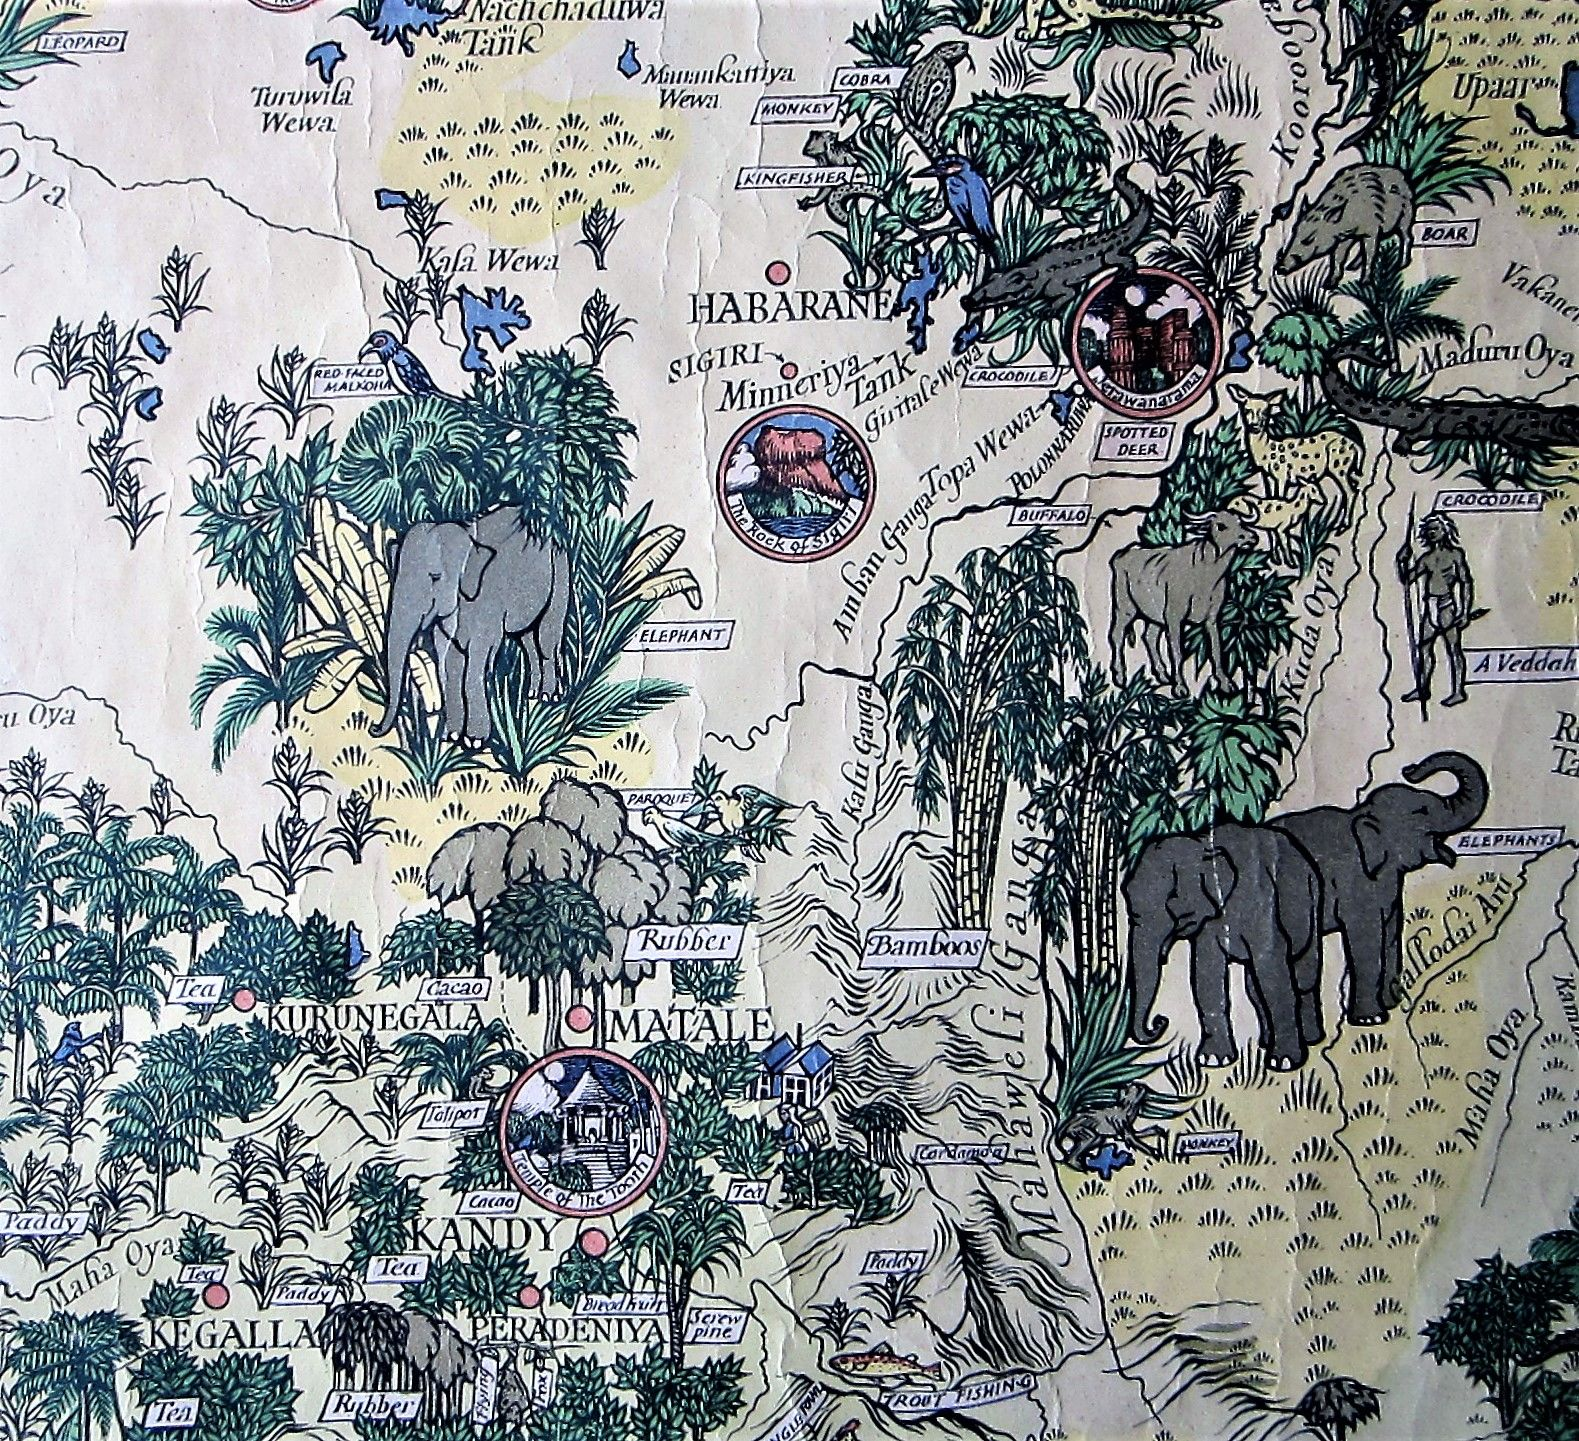 Map of Ceylon showing her Tea & other industries. (photo 6)